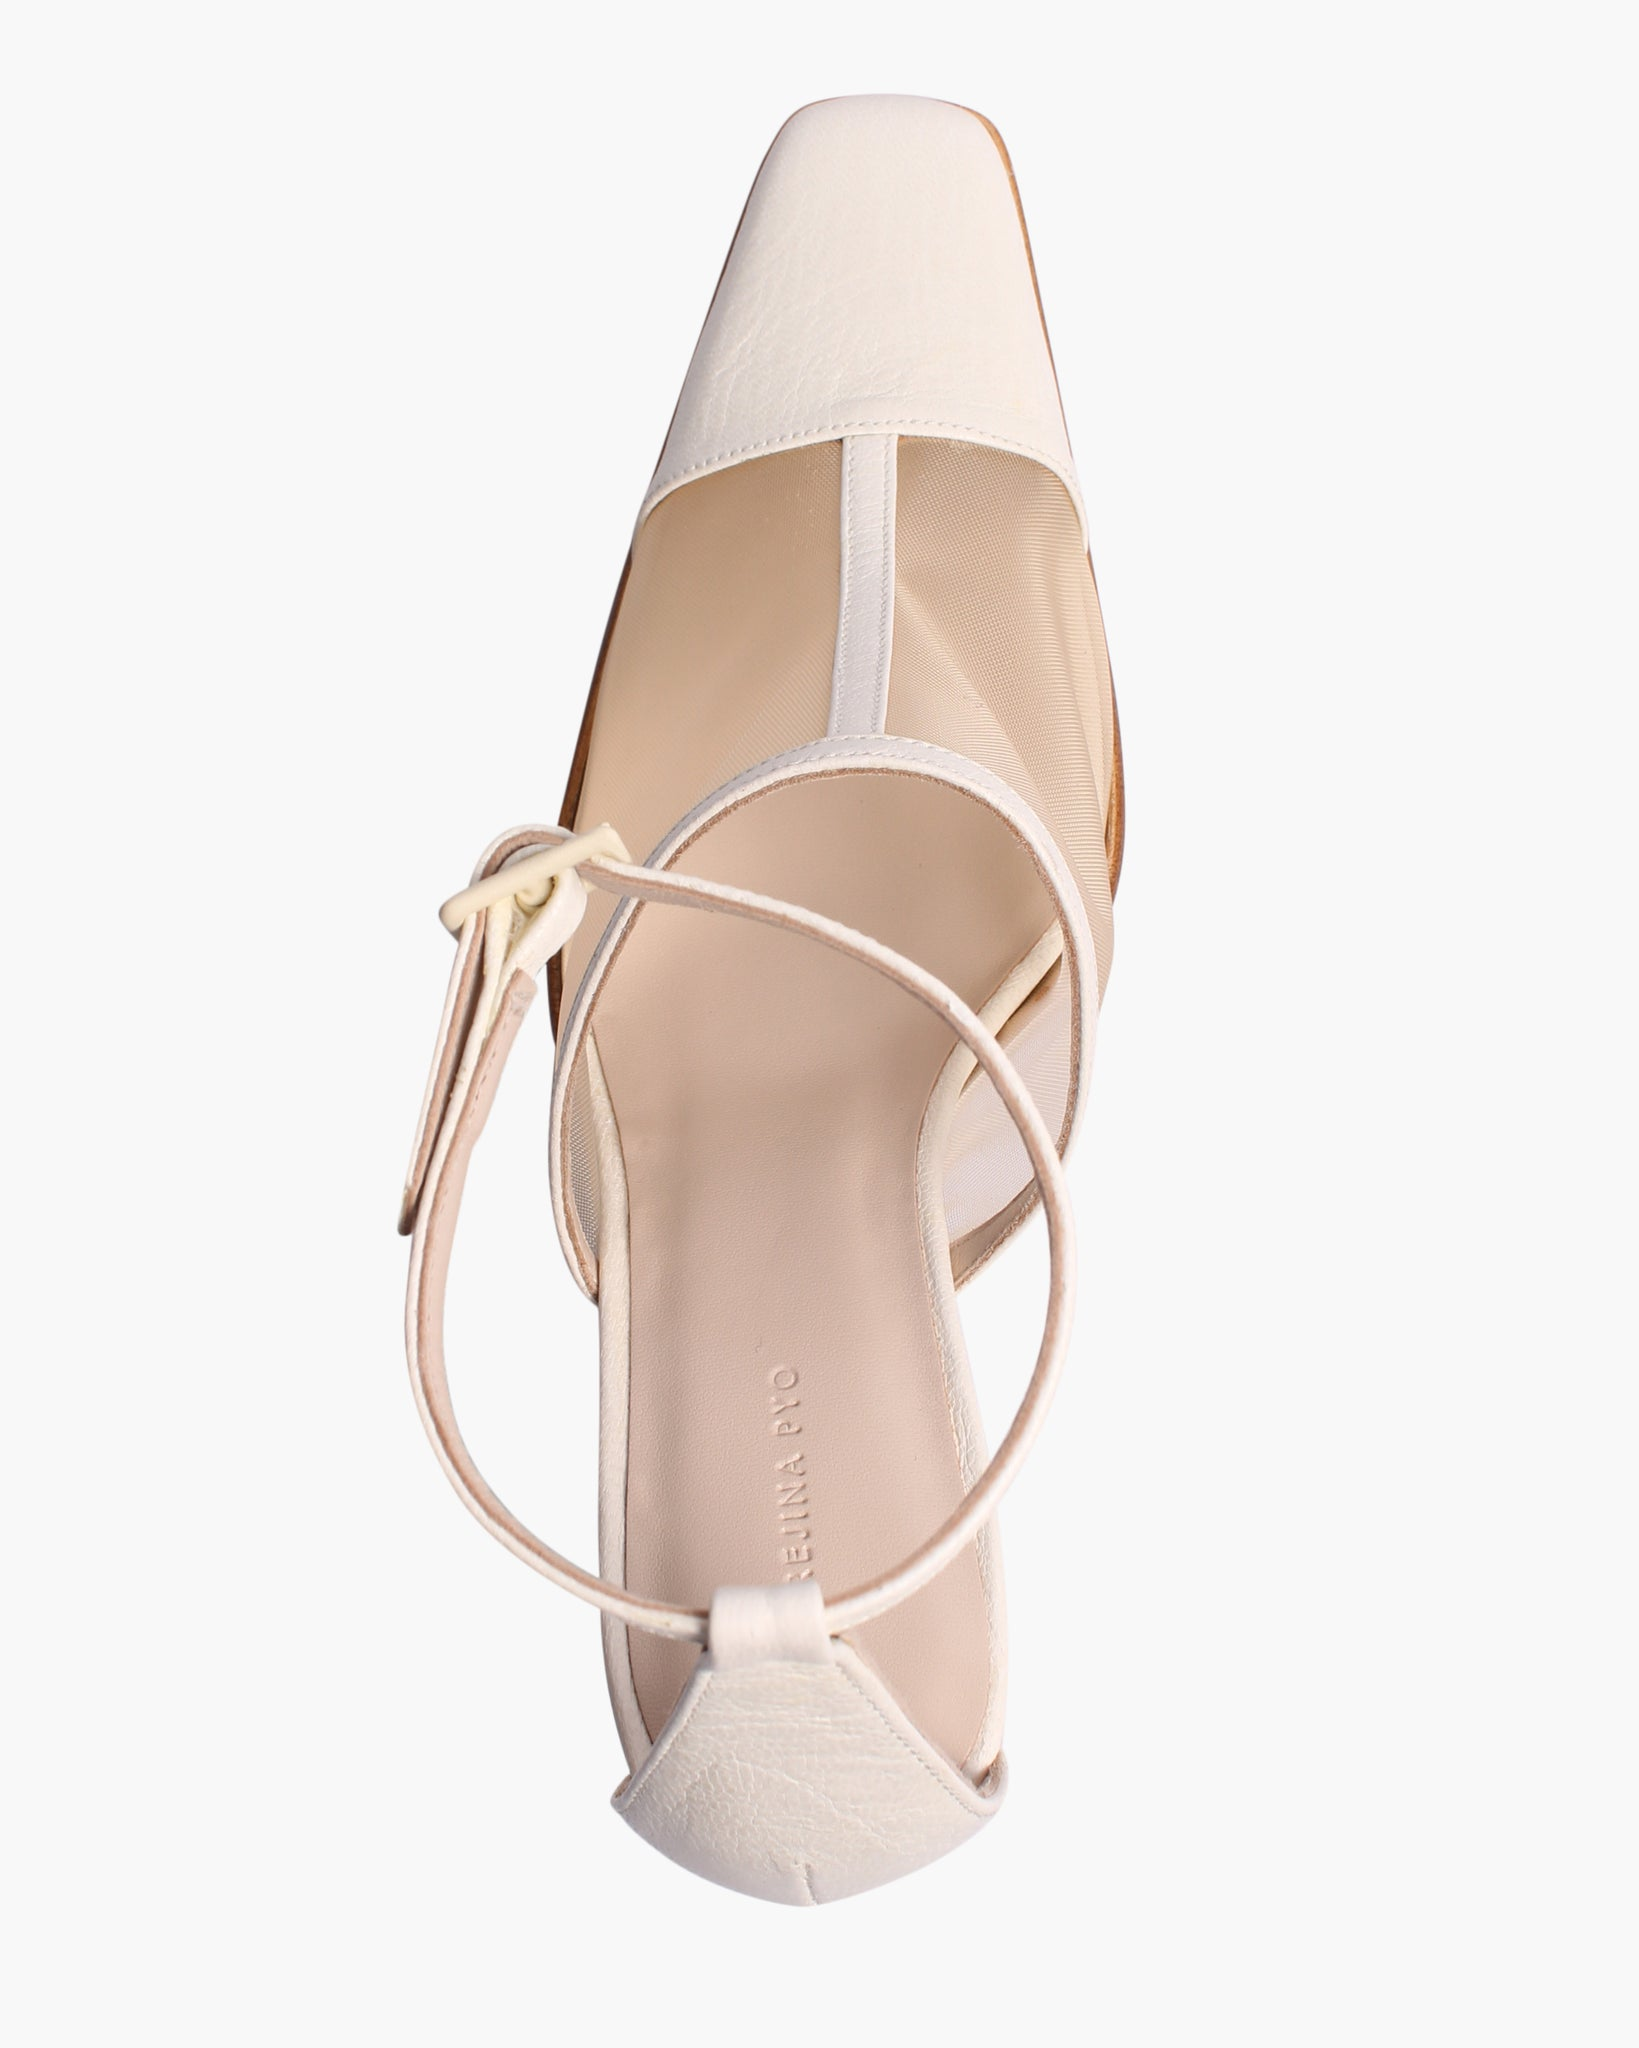 Estelle Heels Leather Mesh Ivory